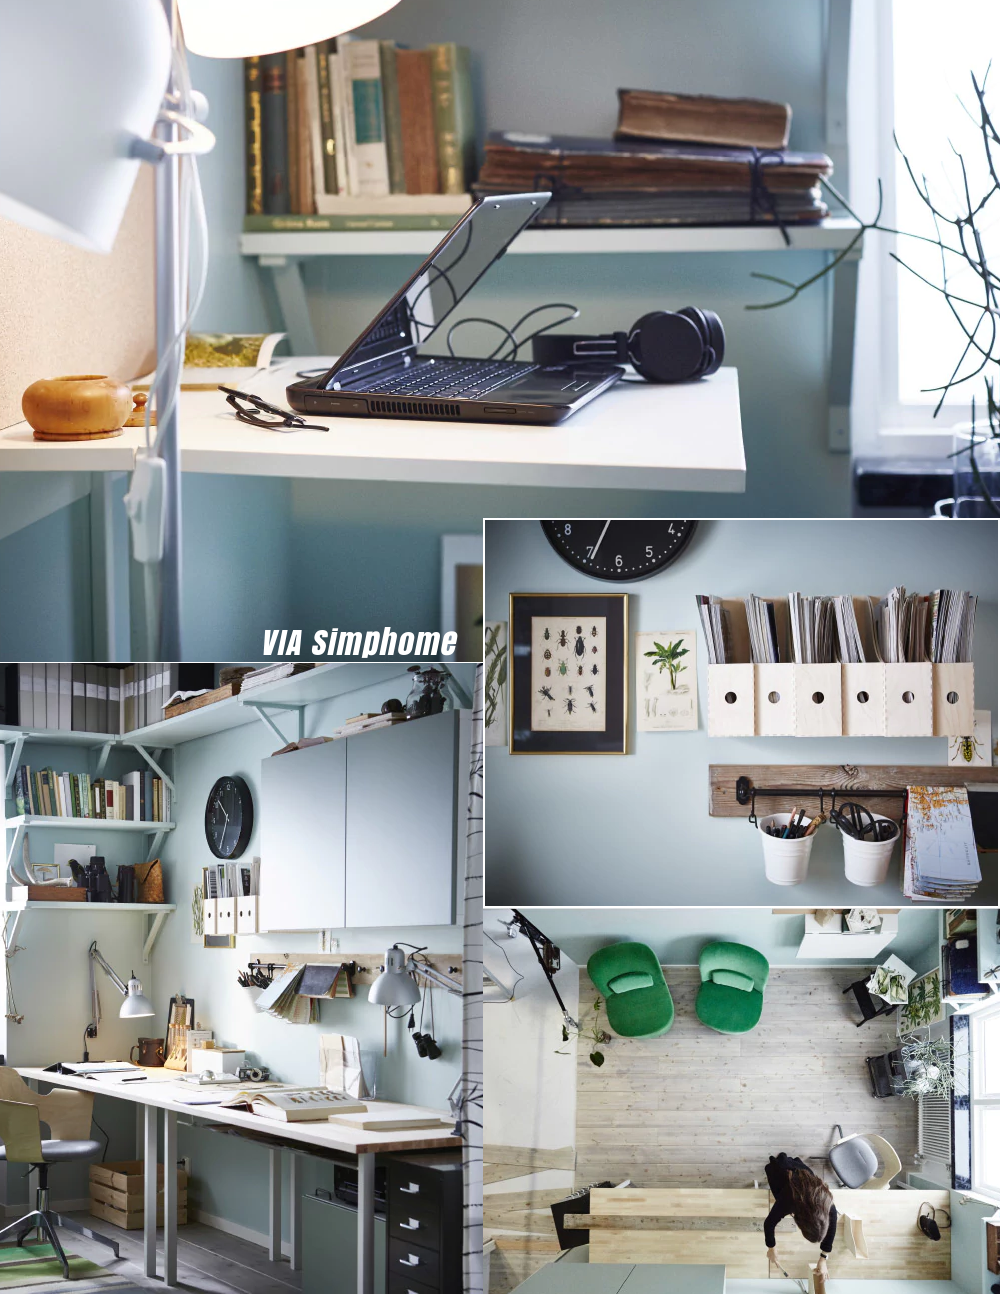 50 Work Room ikea inspiration via simphome